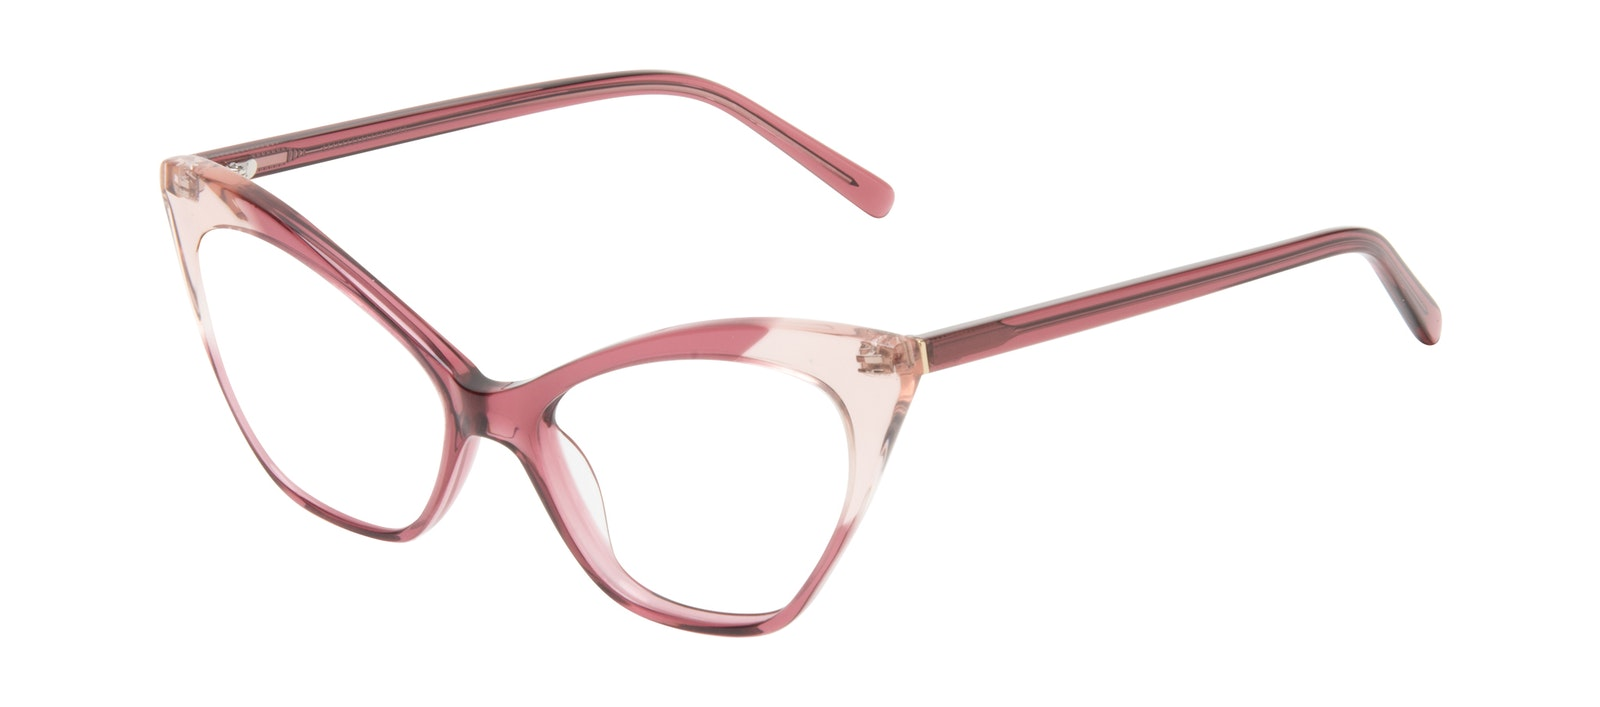 Affordable Fashion Glasses Cat Eye Eyeglasses Women Gossip Orchid Pink Tilt